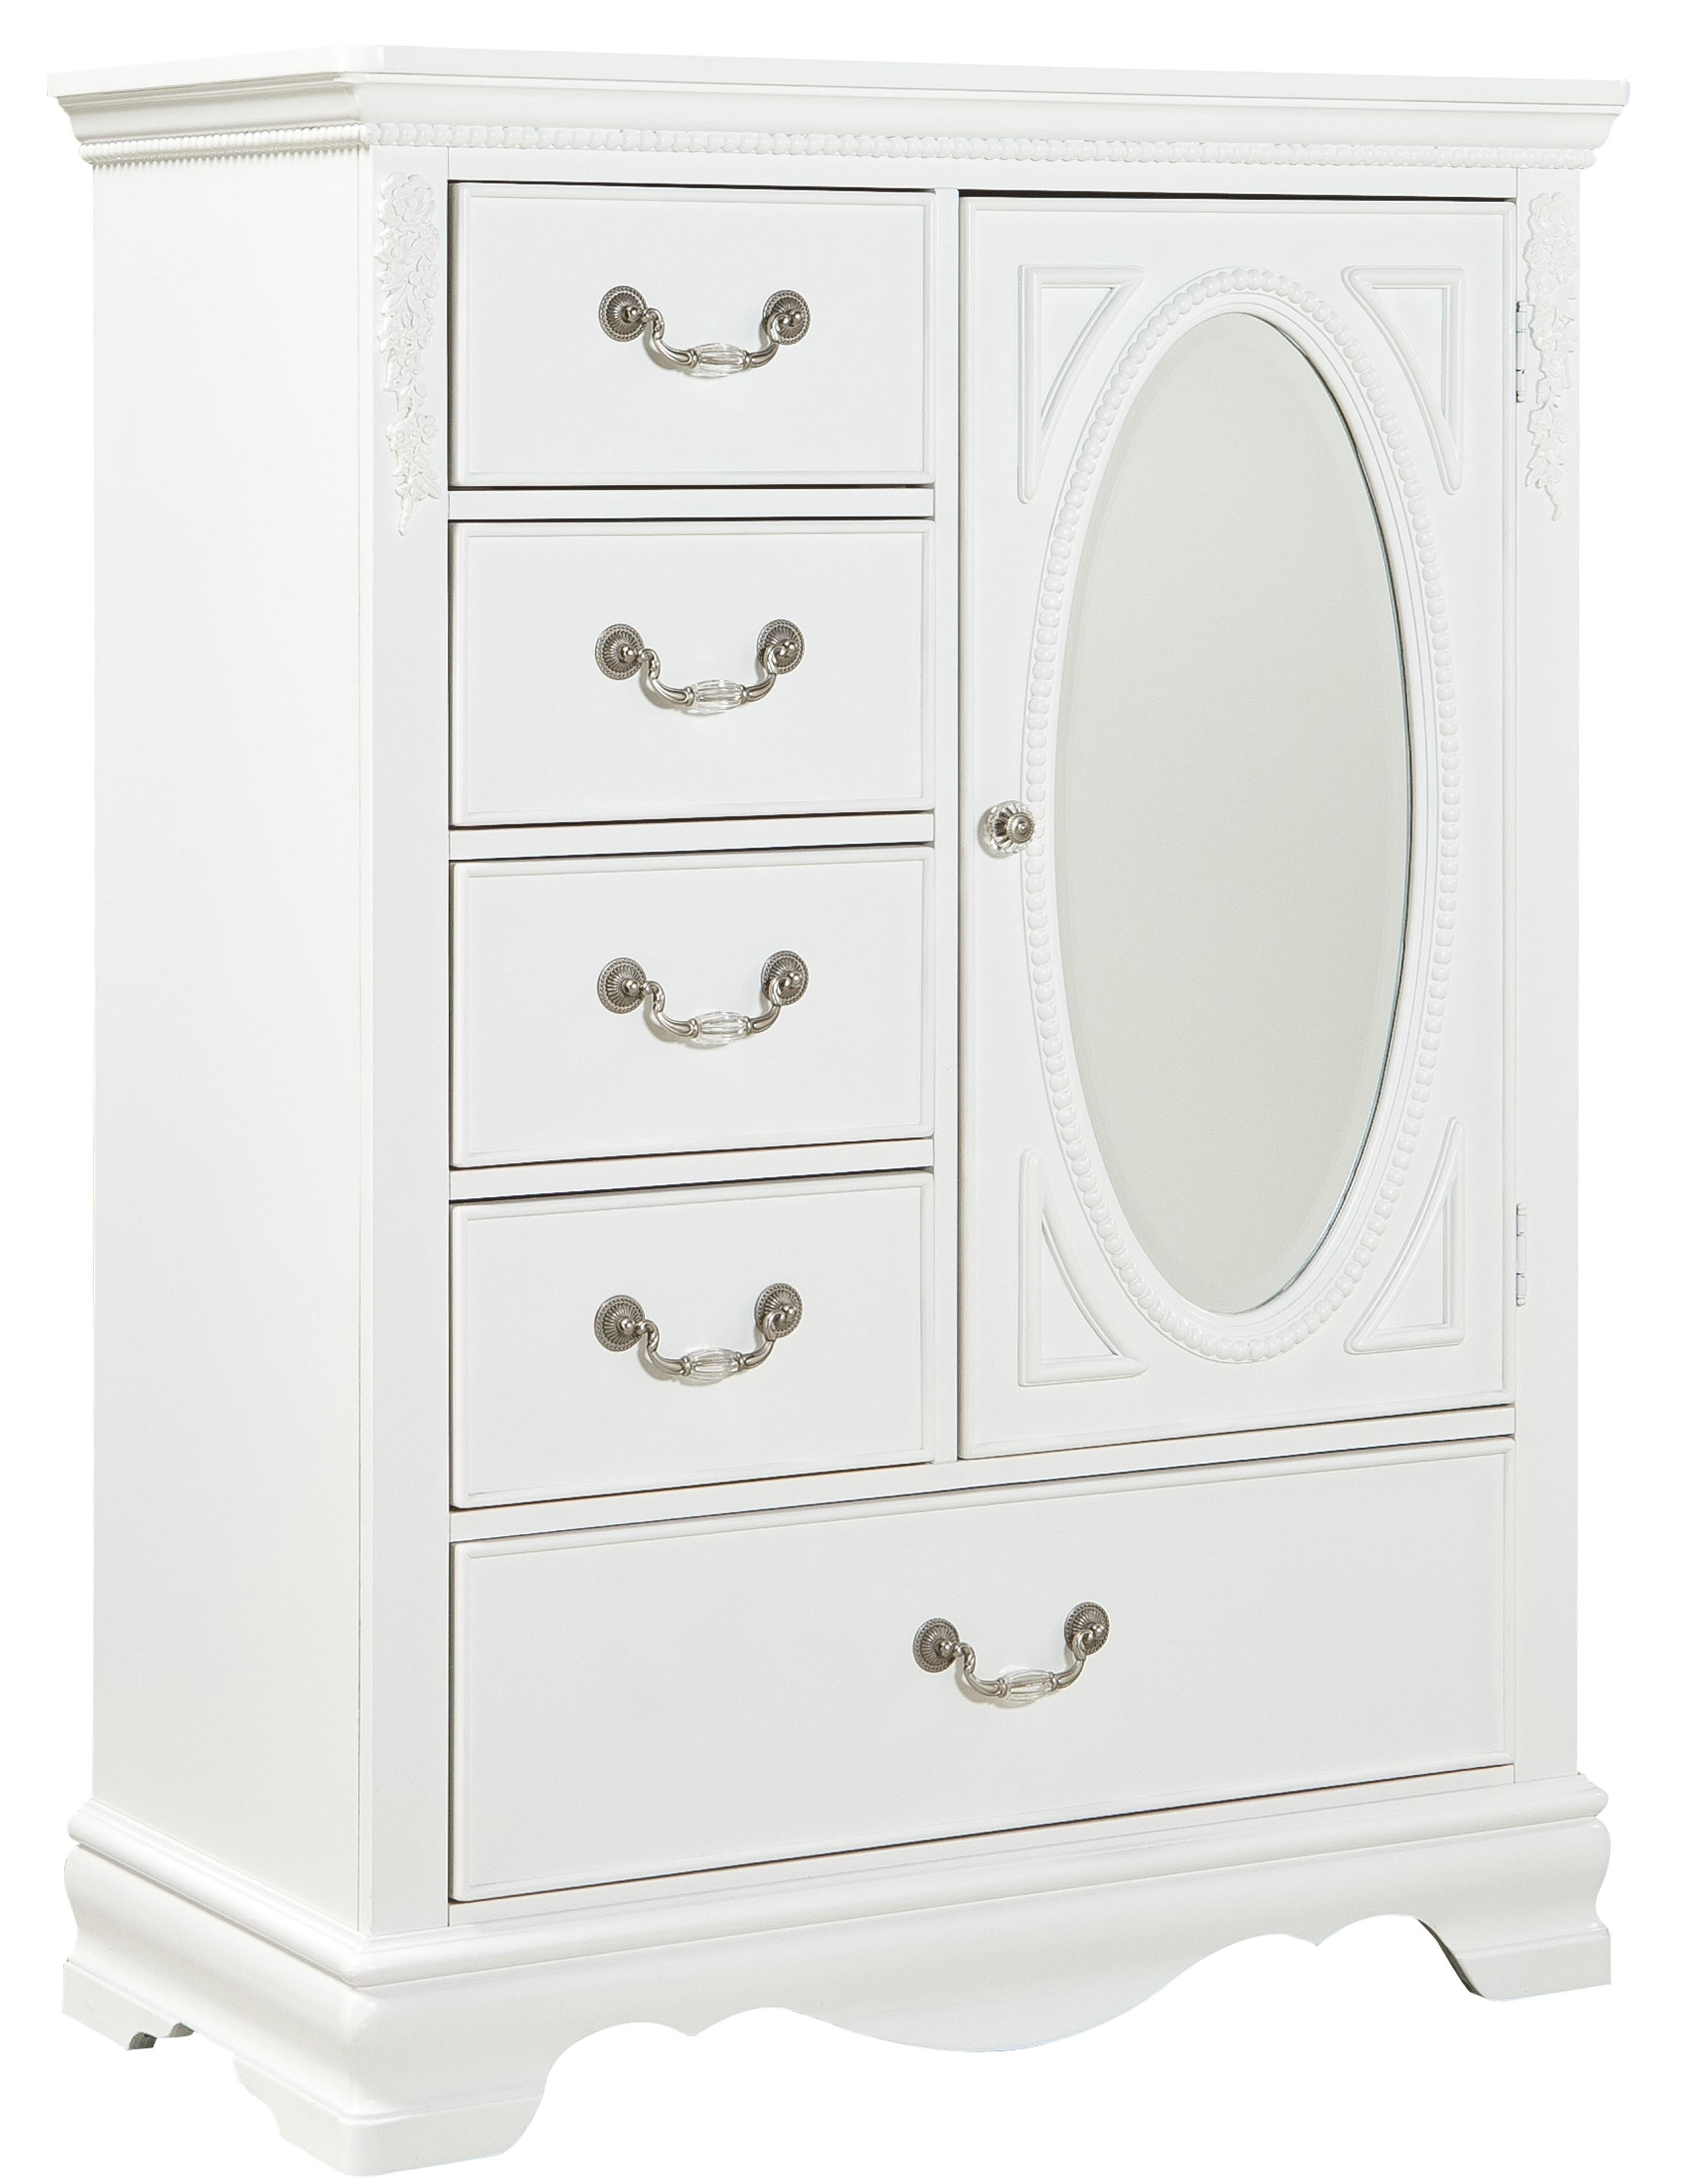 Standard Furniture Jessica Wardrobe - Item Number: 94238